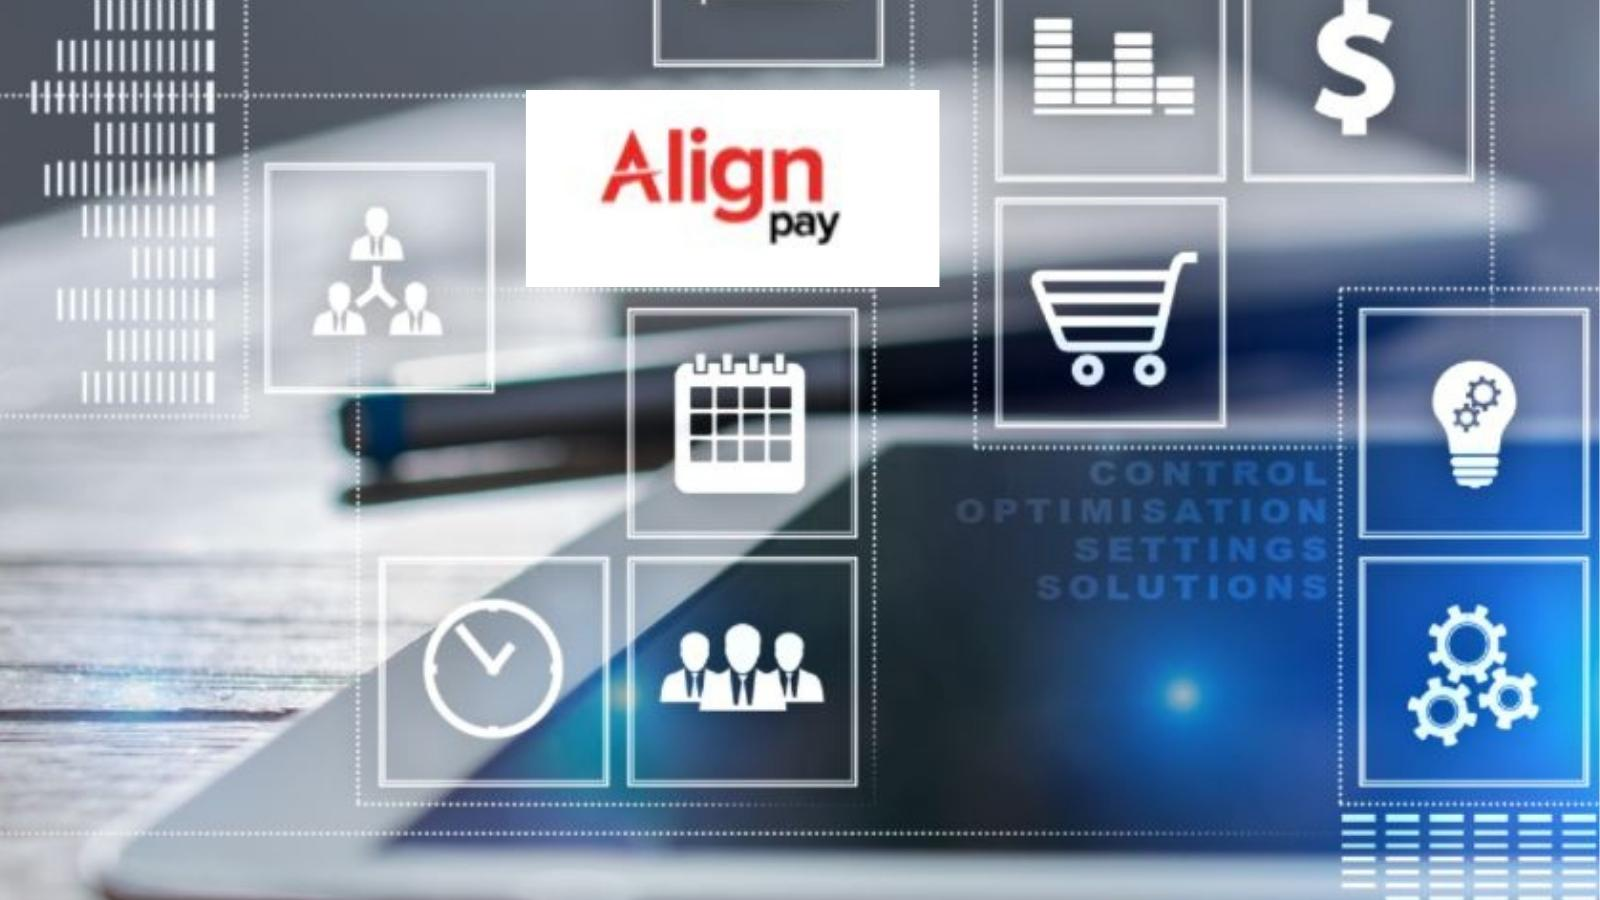 align pay